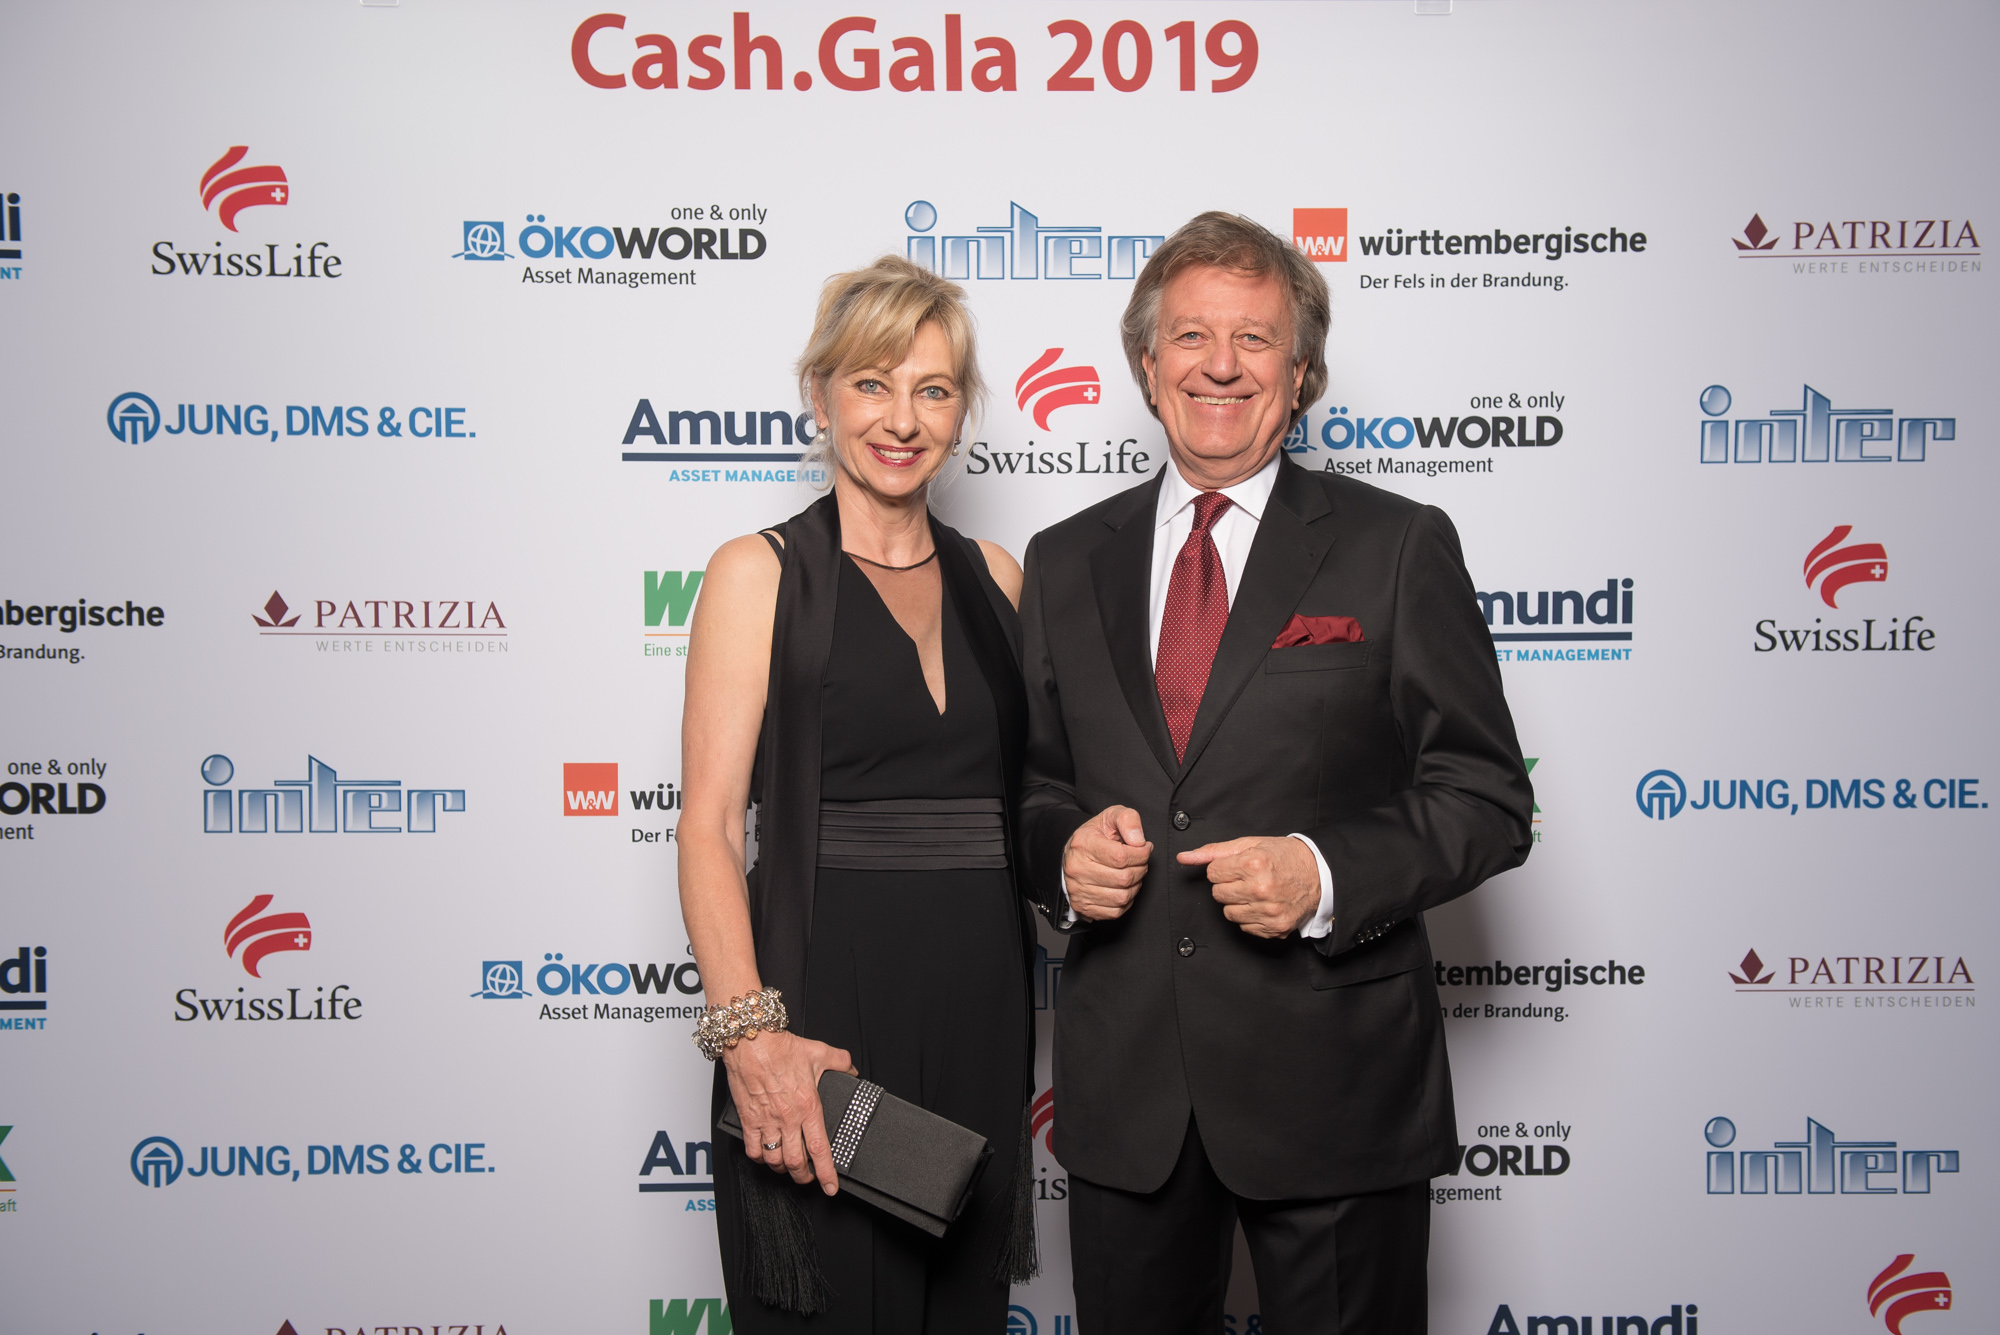 CashGala 2019 0034 AM DSC7040 in Cash.Gala 2019